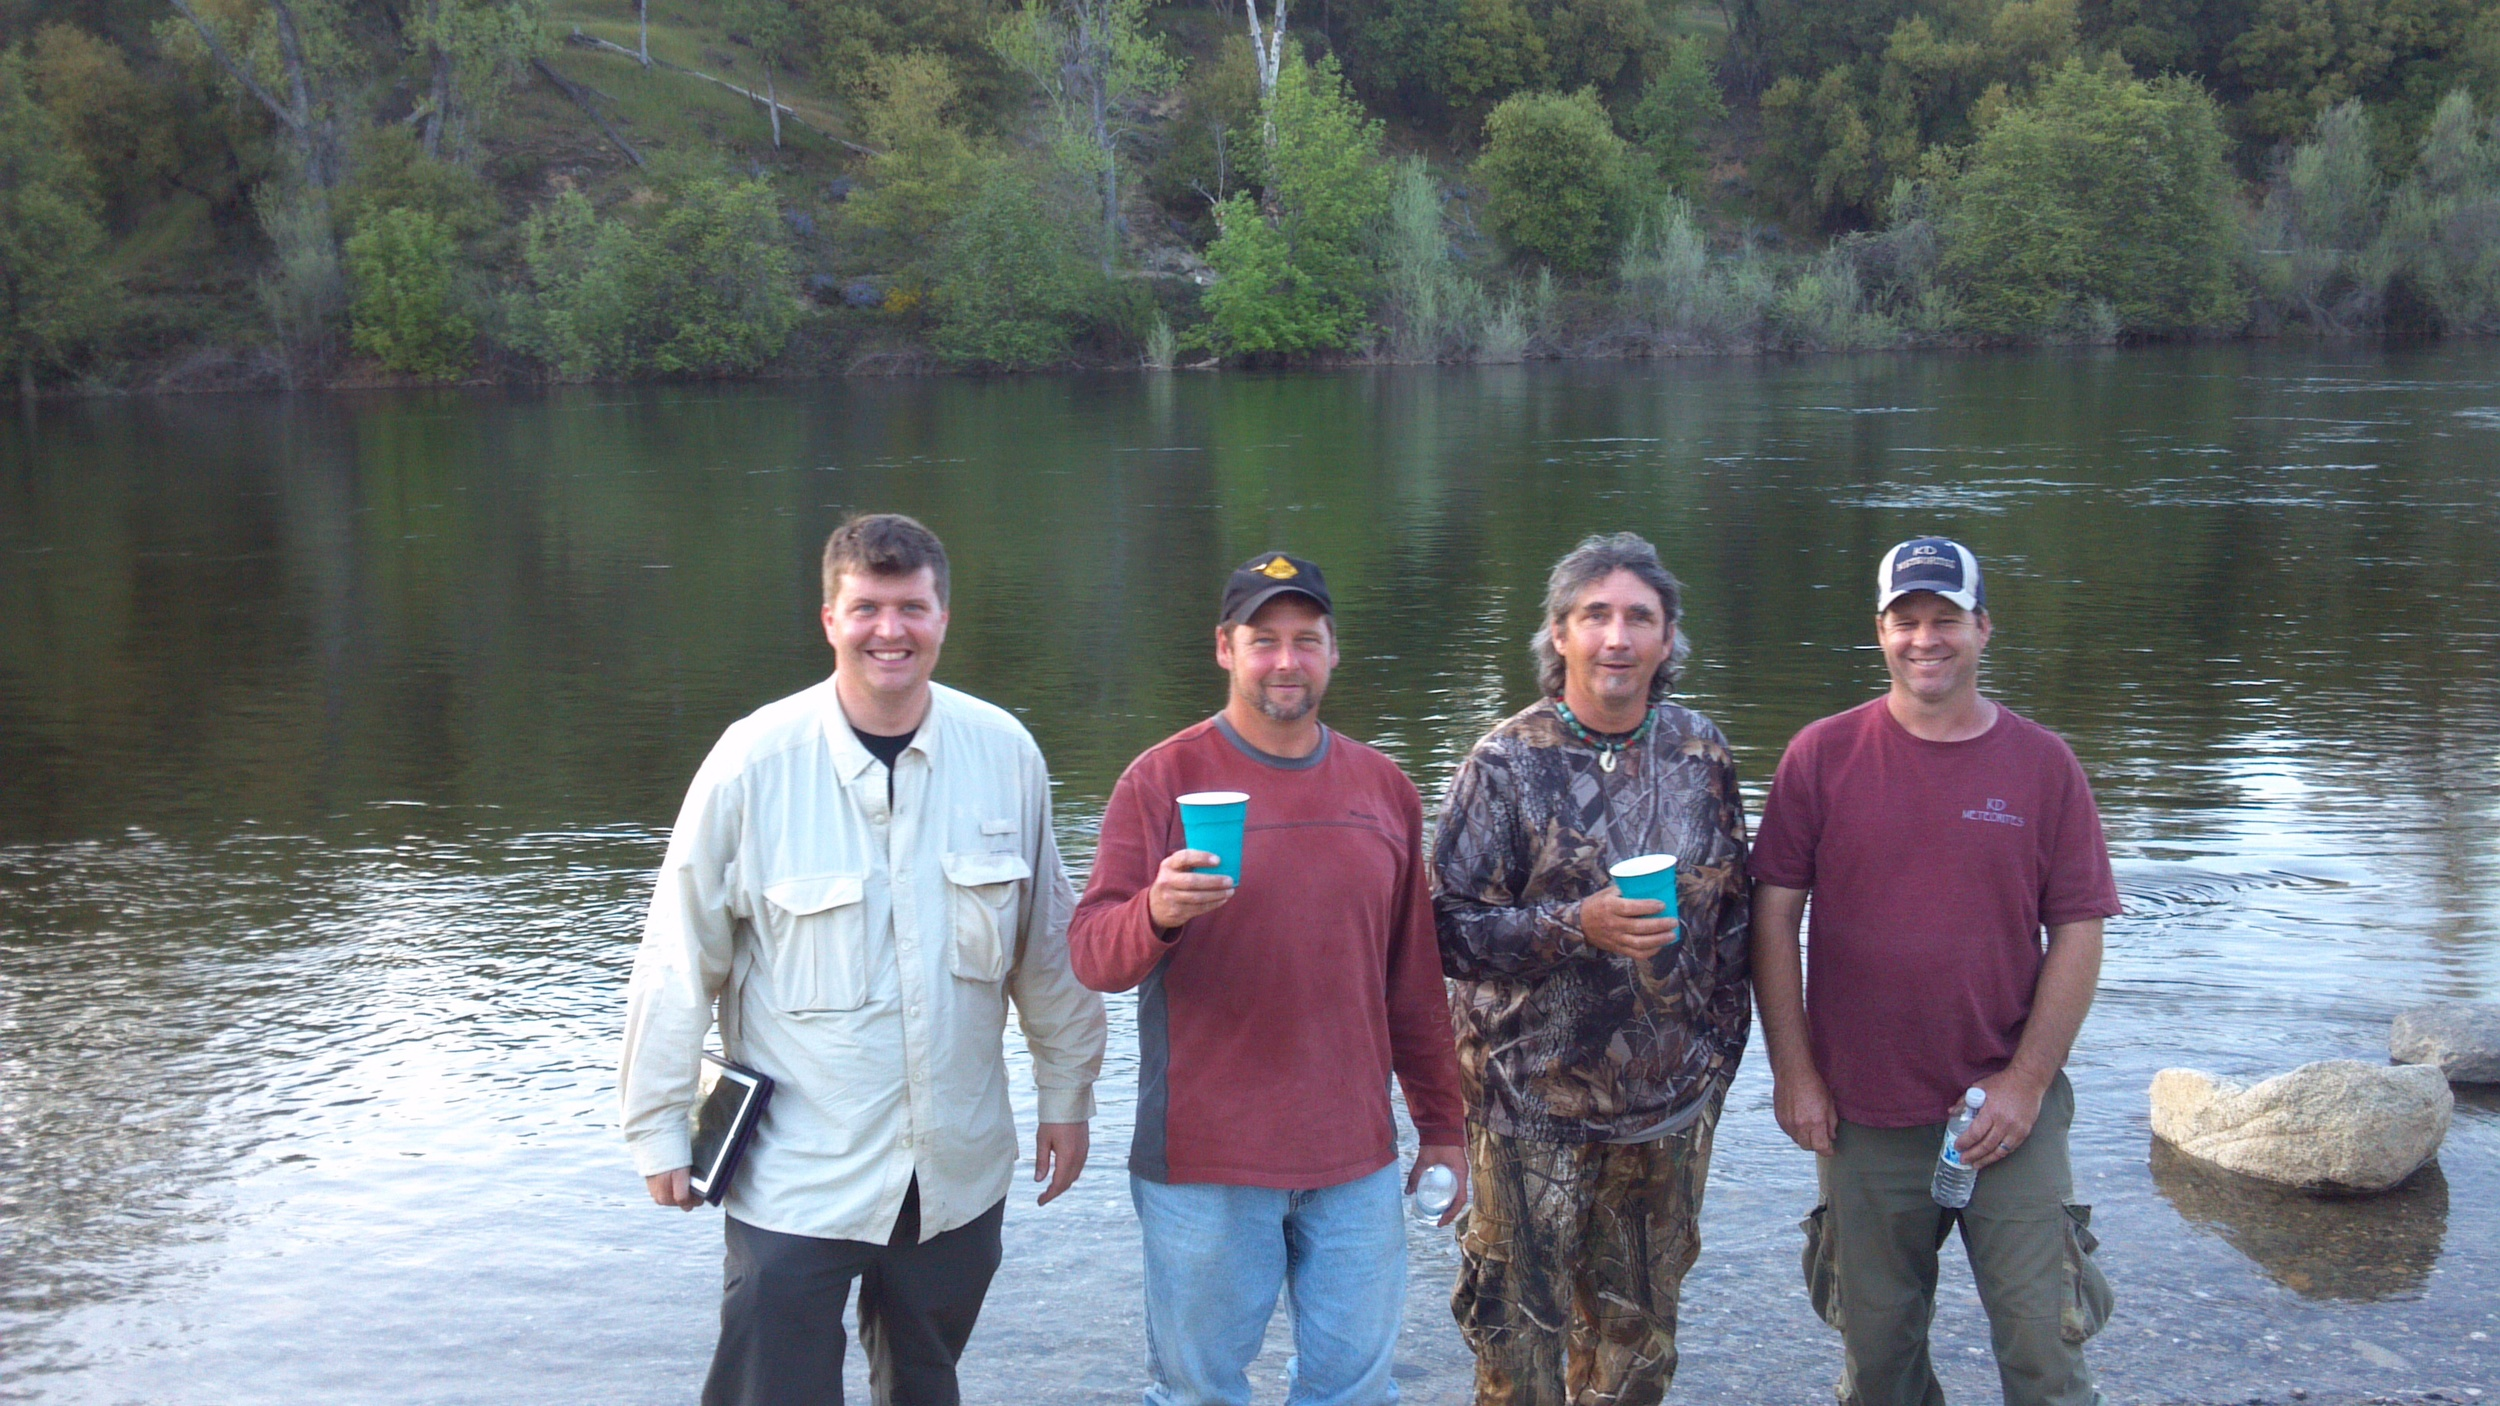 Mike Hankey, Larry Atkins, Scott Johnson, Keith Jenkerson.